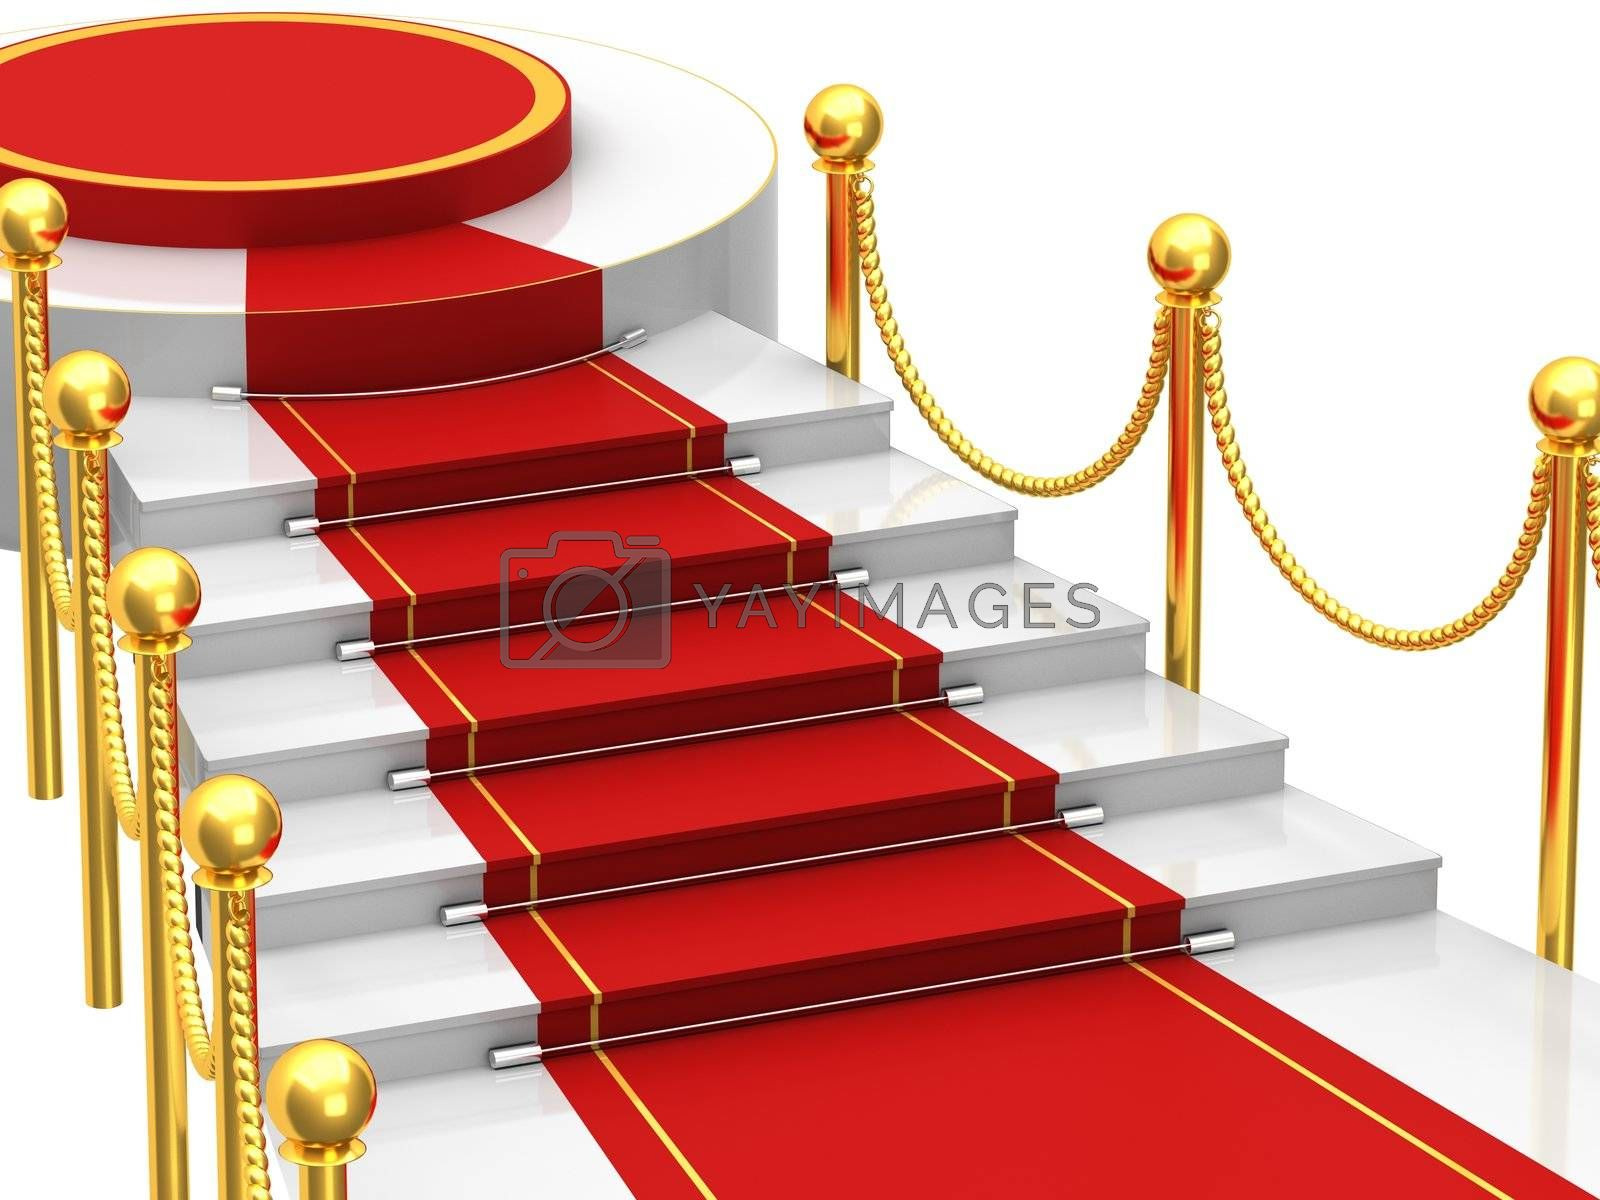 Ladders with red carpet by Lina0486